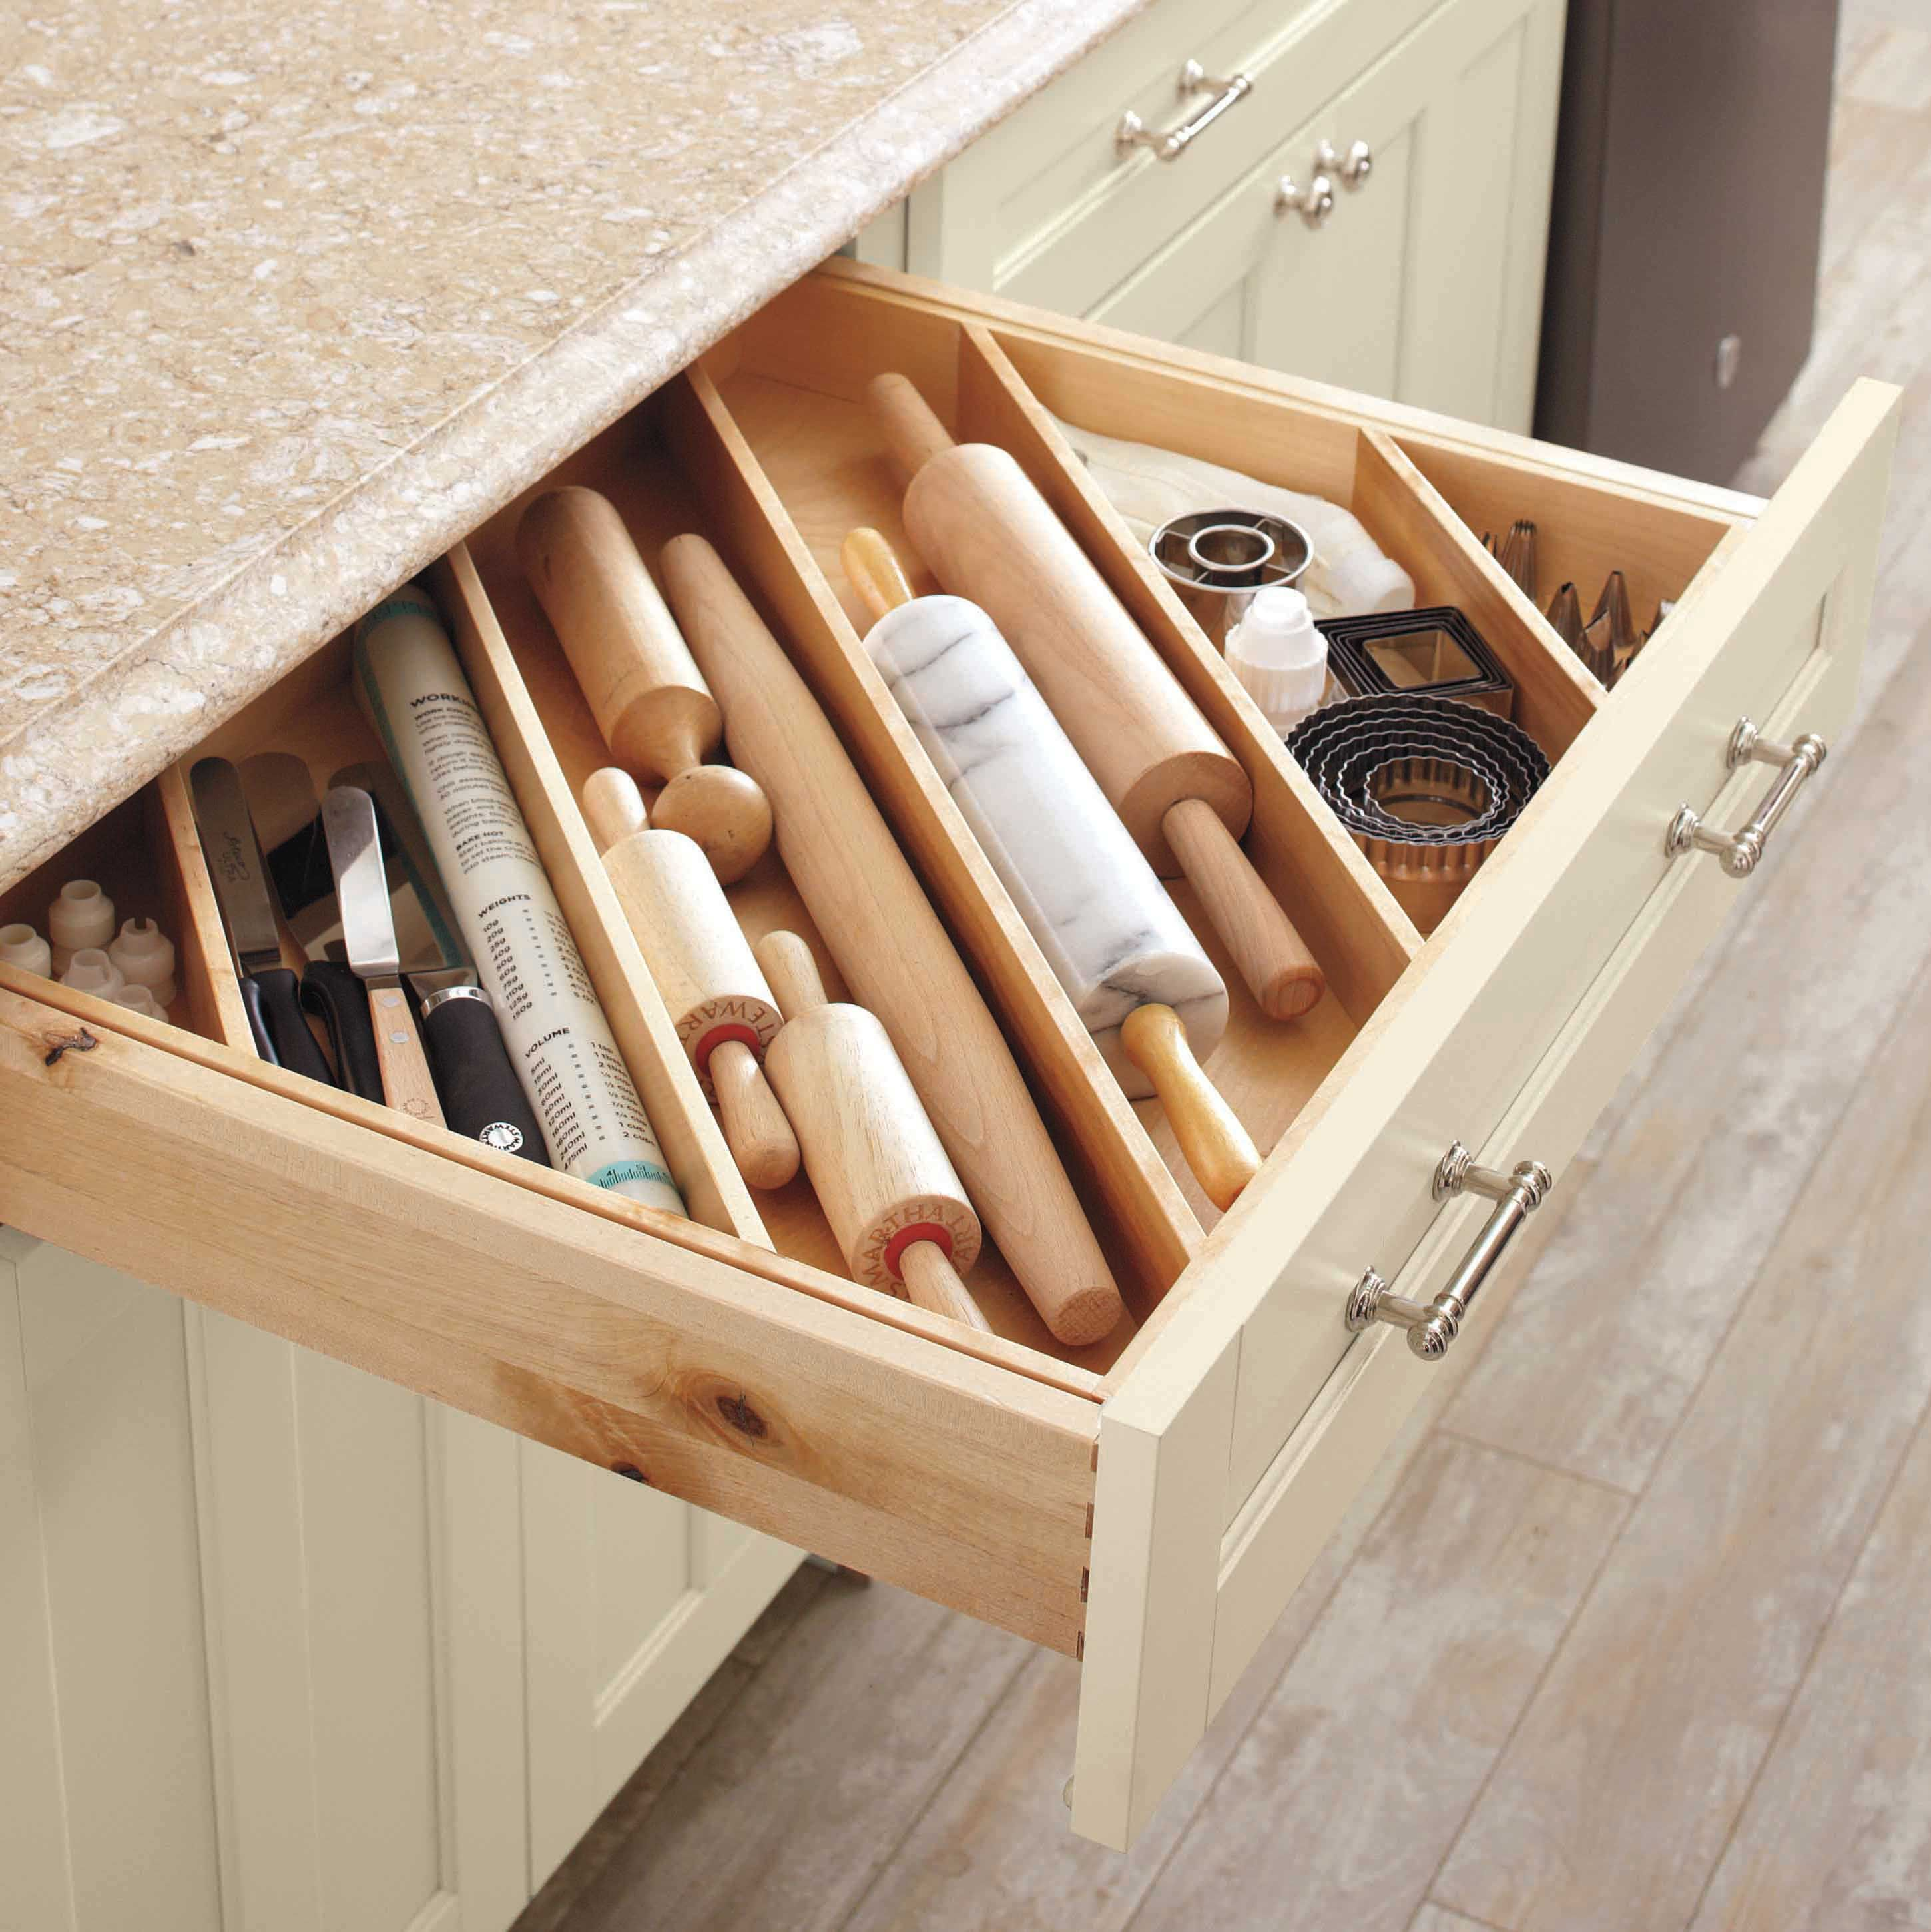 Messy Kitchen Drawer: Our Top Storage And Organization Ideas—Just In Time For